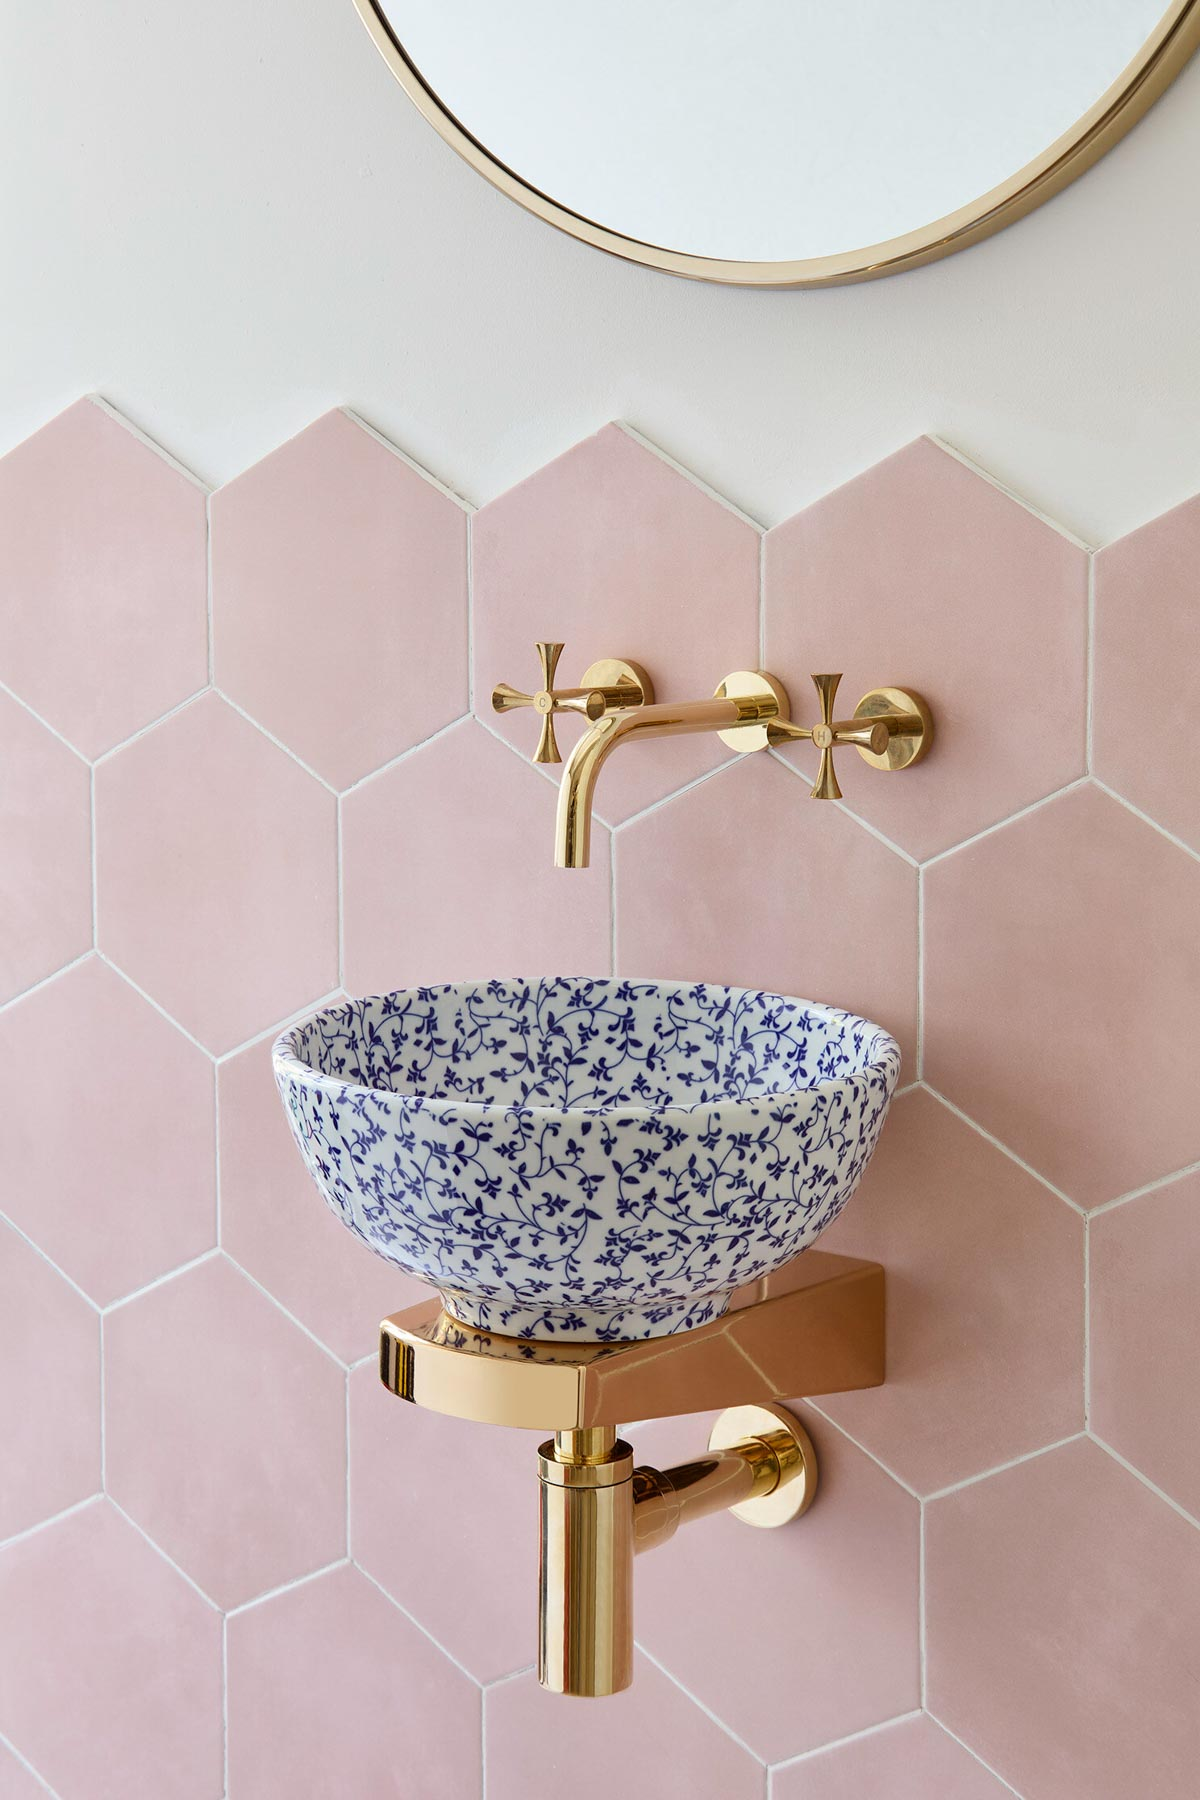 The cutest mini basin sink perfect for small bathrooms!